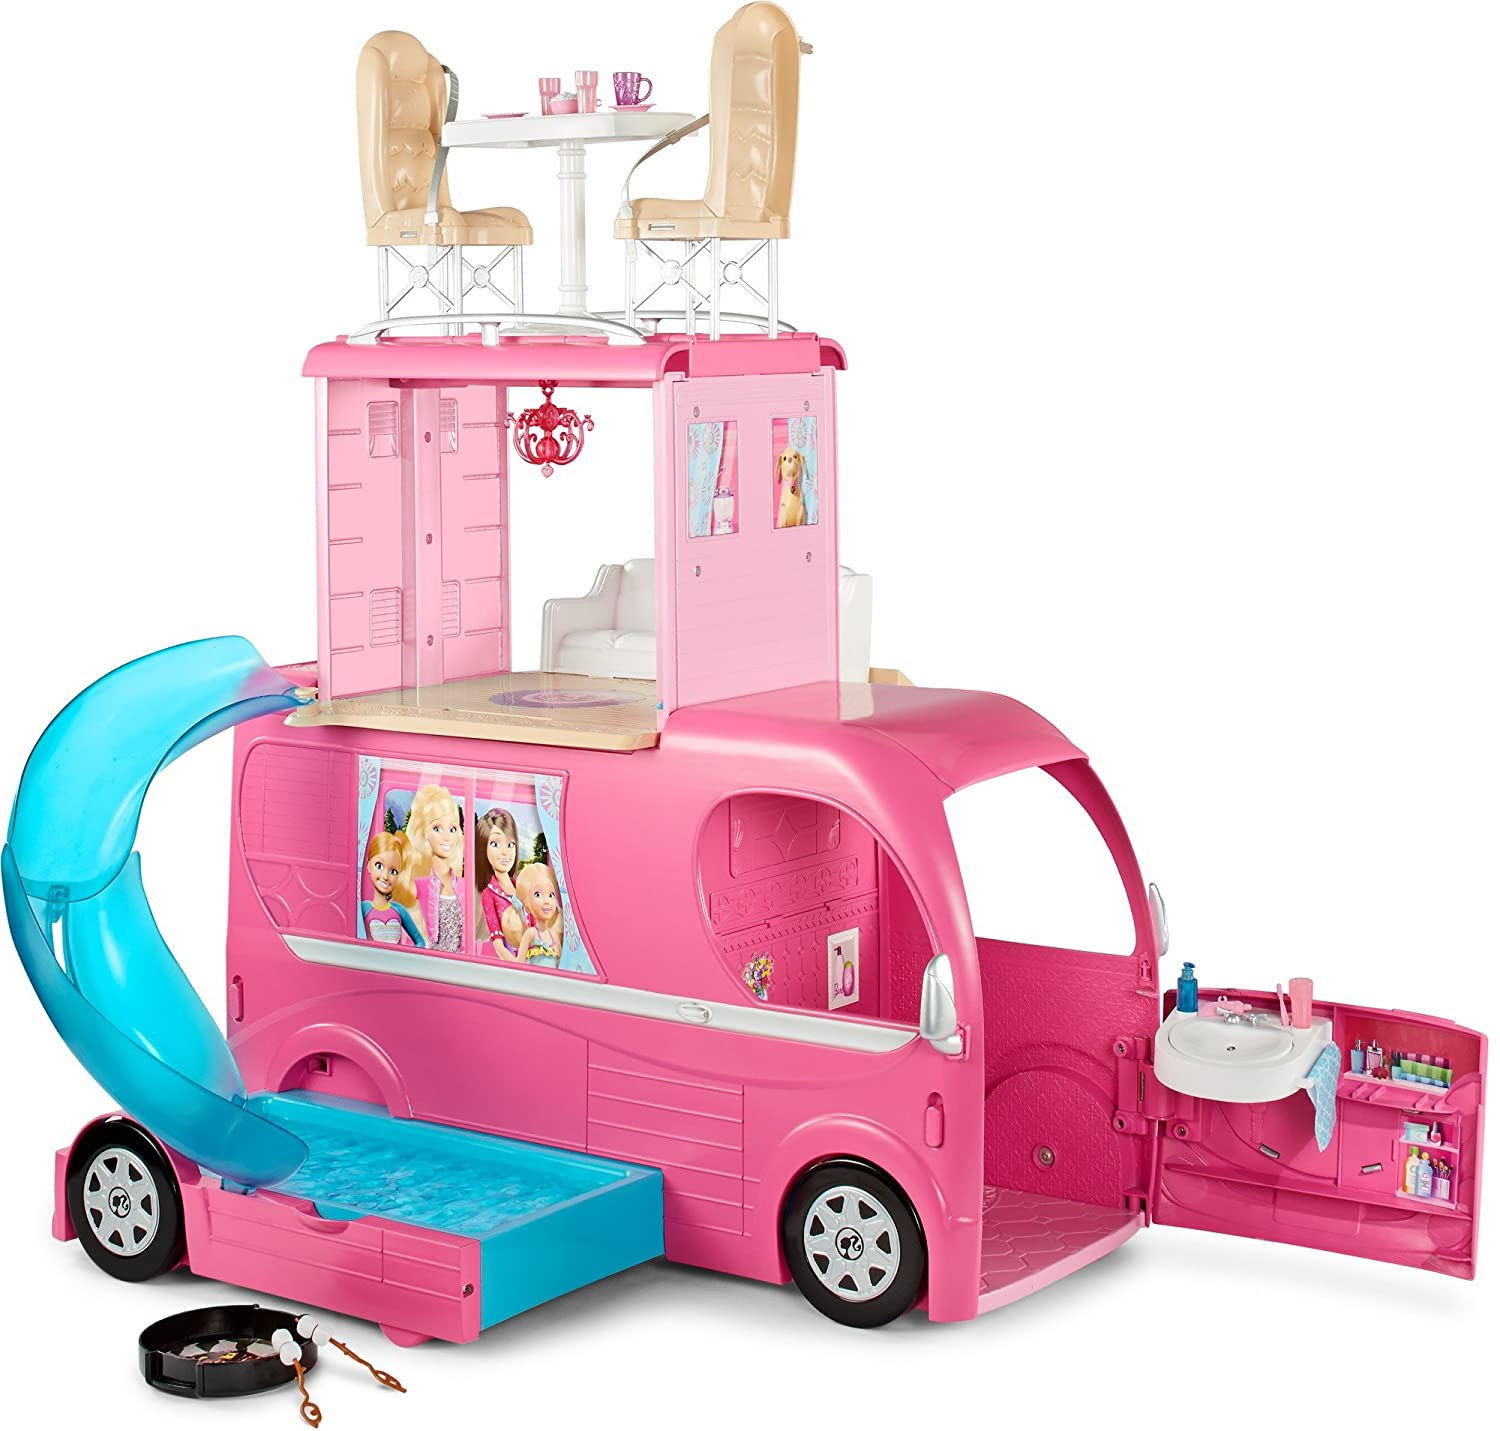 Barbie Pop-Up Camper Vehicle CJT42